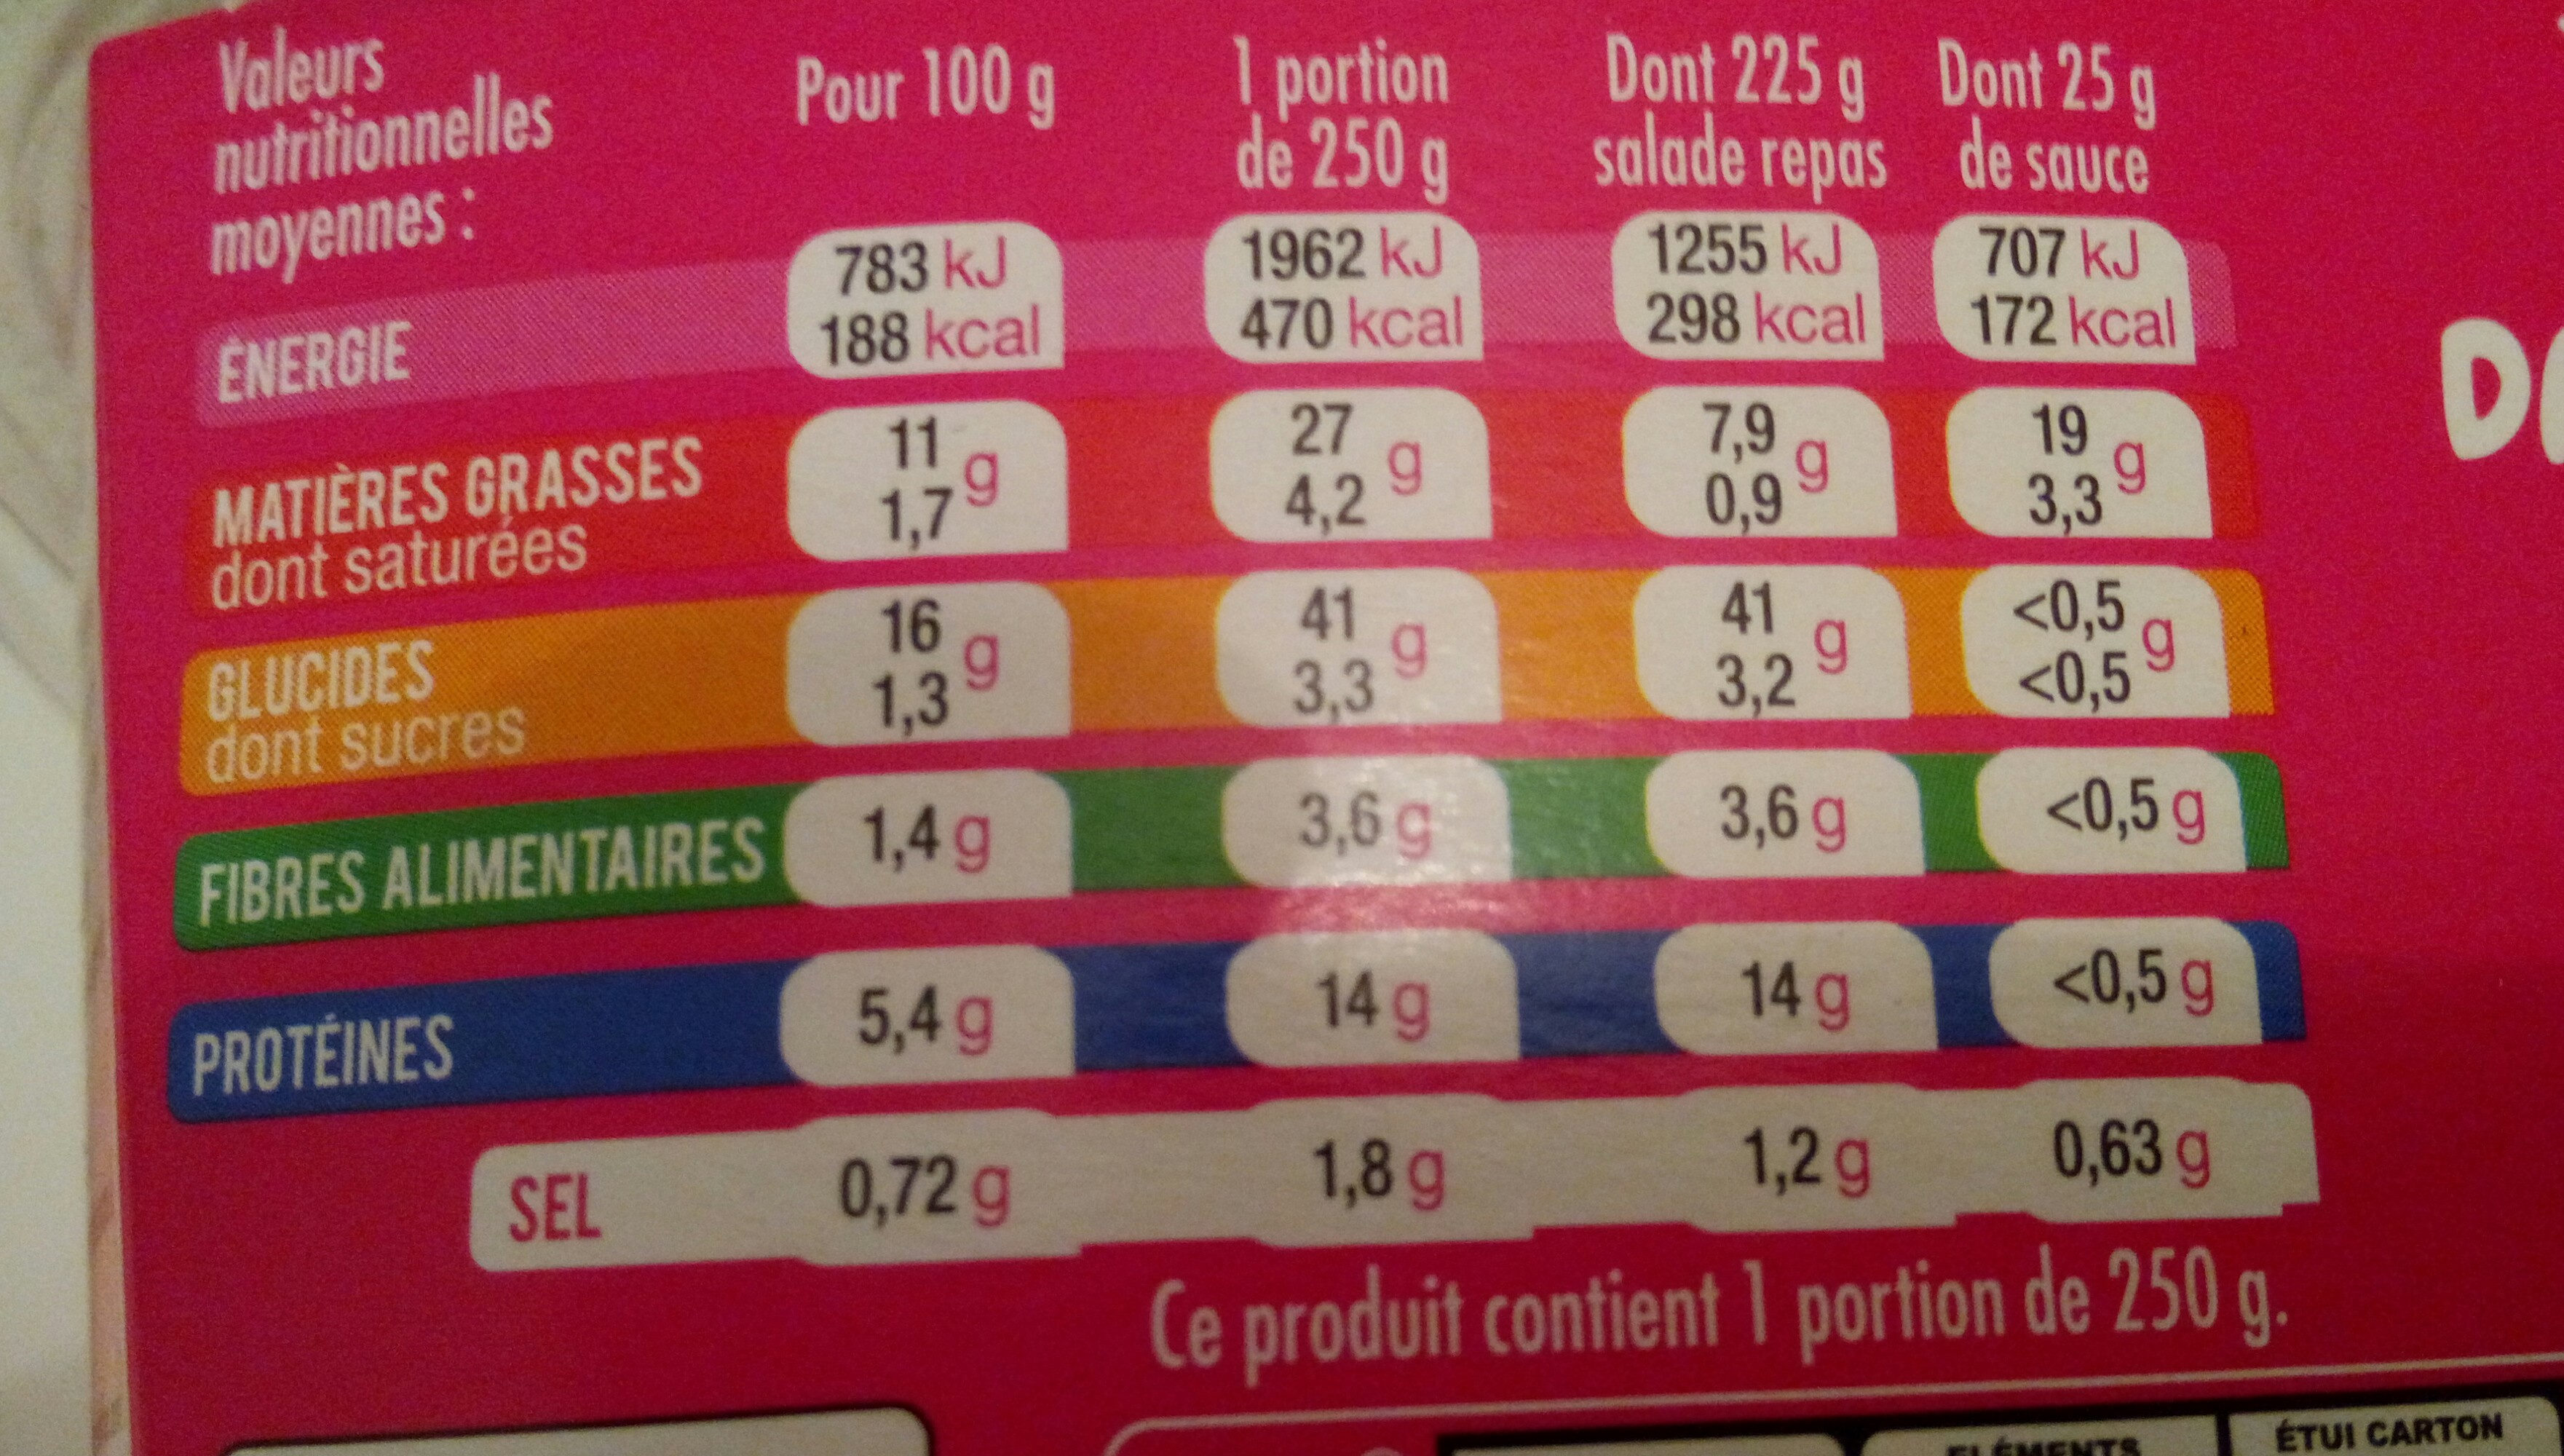 Mix saumon fumé - Nutrition facts